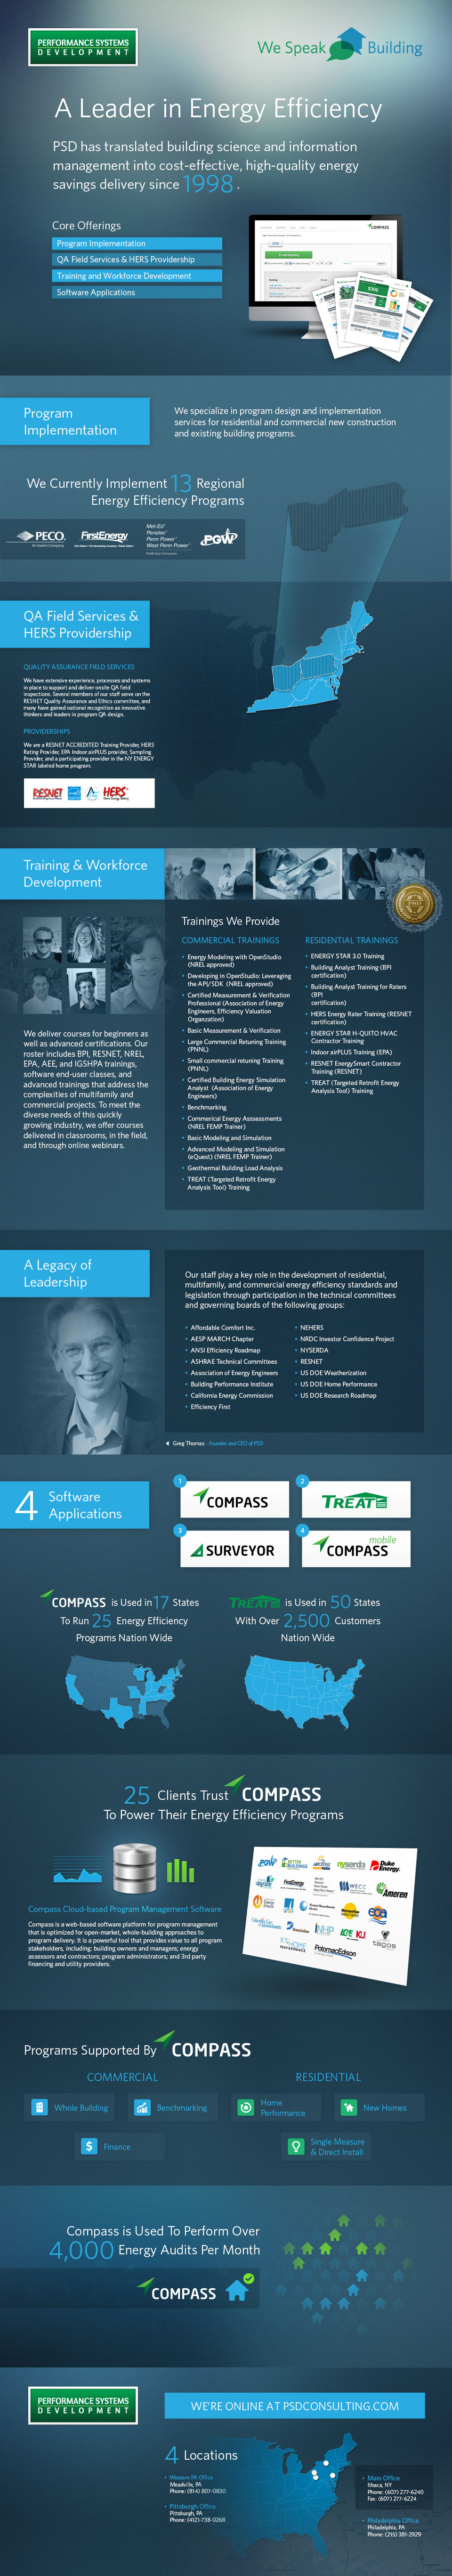 Performance Systems Development (PSD) Infographic 2014